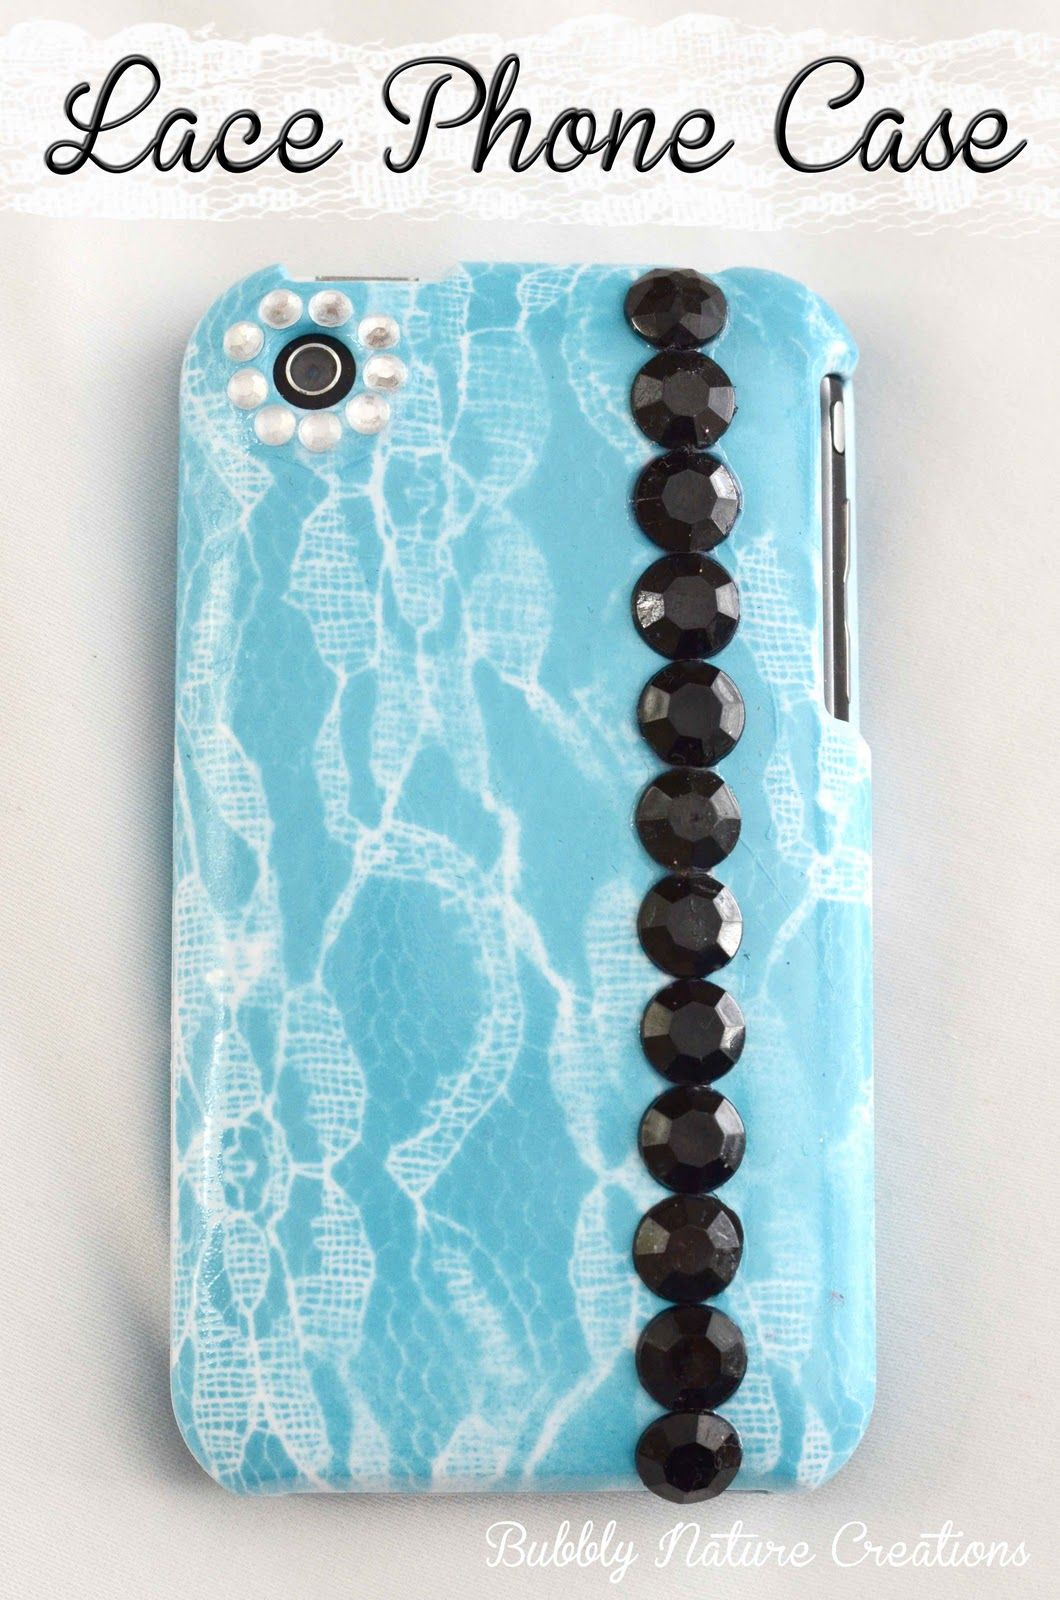 Diy Lace Phone Case Lace Phone Case Diy Lace Phone Case Diy Phone Case